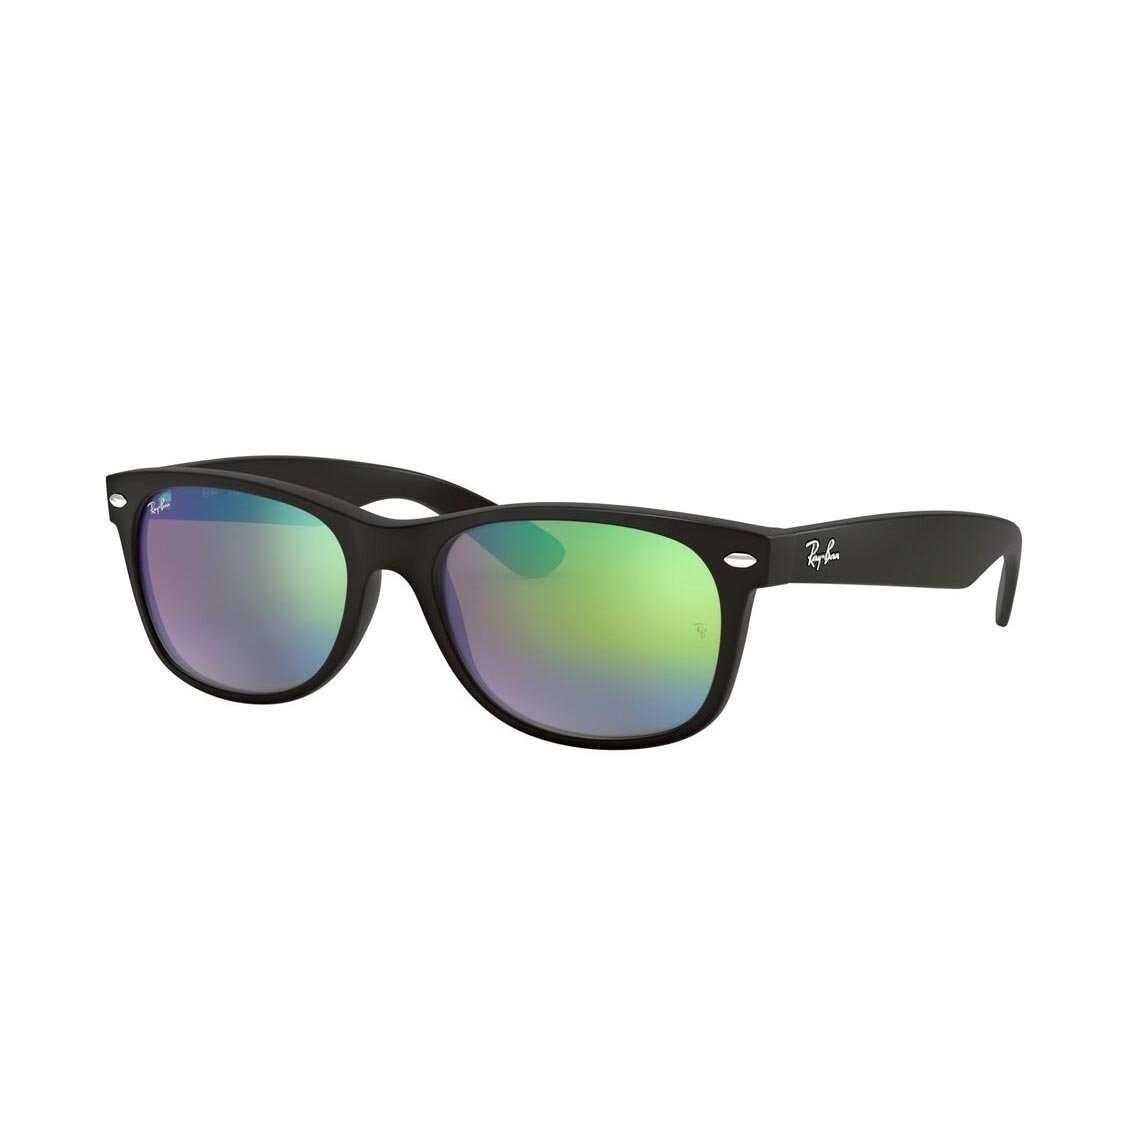 Ray-Ban New Wayfarer RB2132 622/19 55